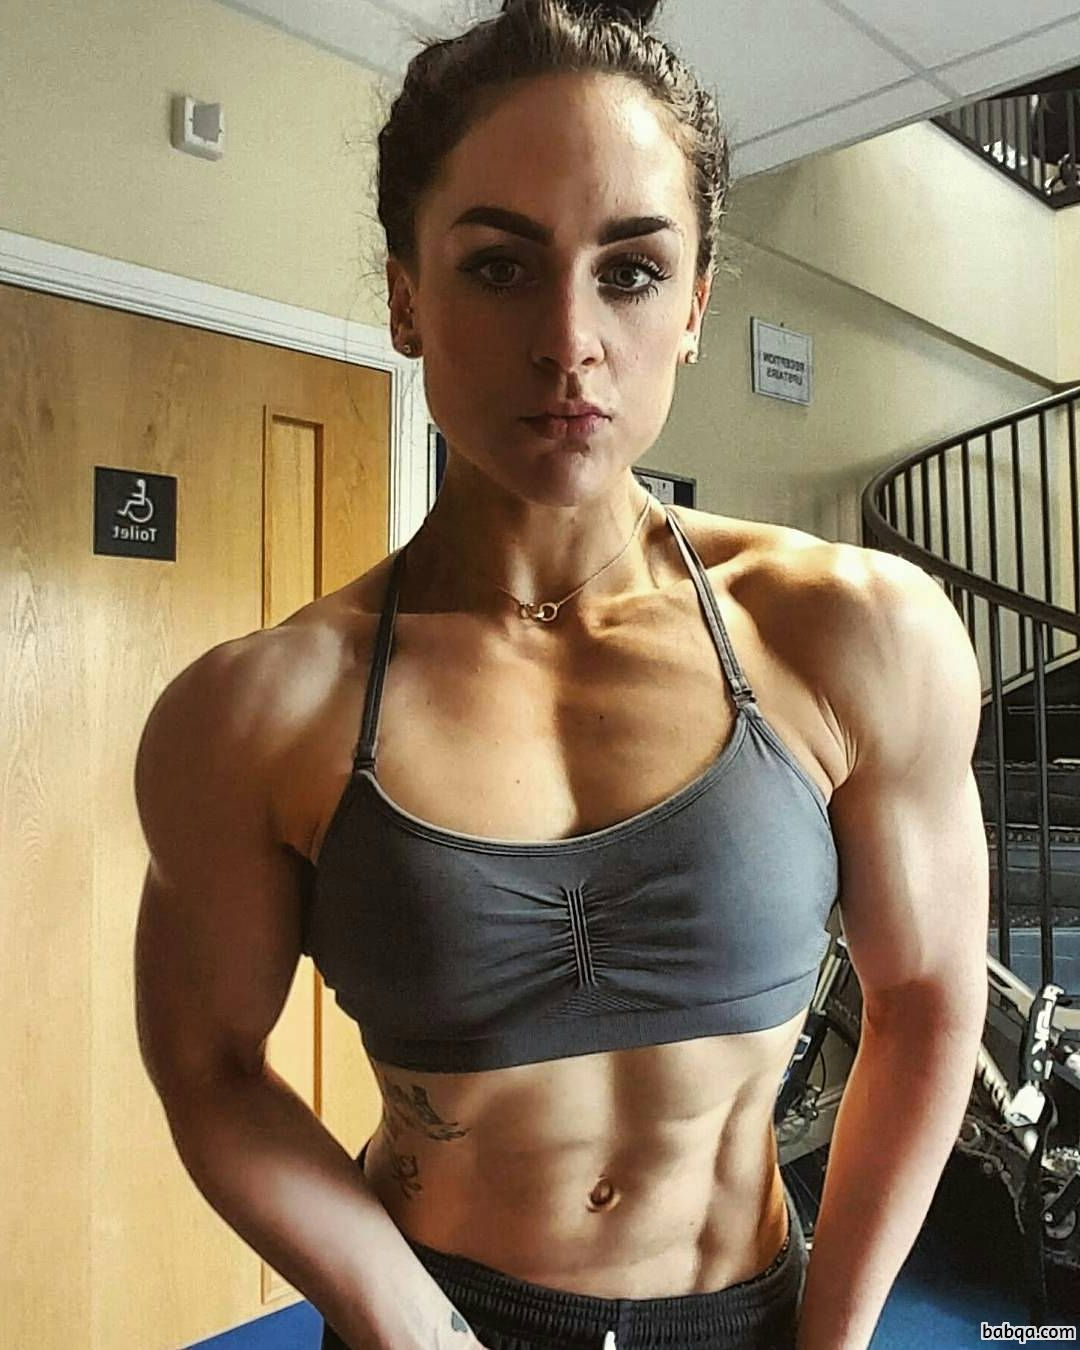 hottest girl with fitness body and muscle bottom pic from g+